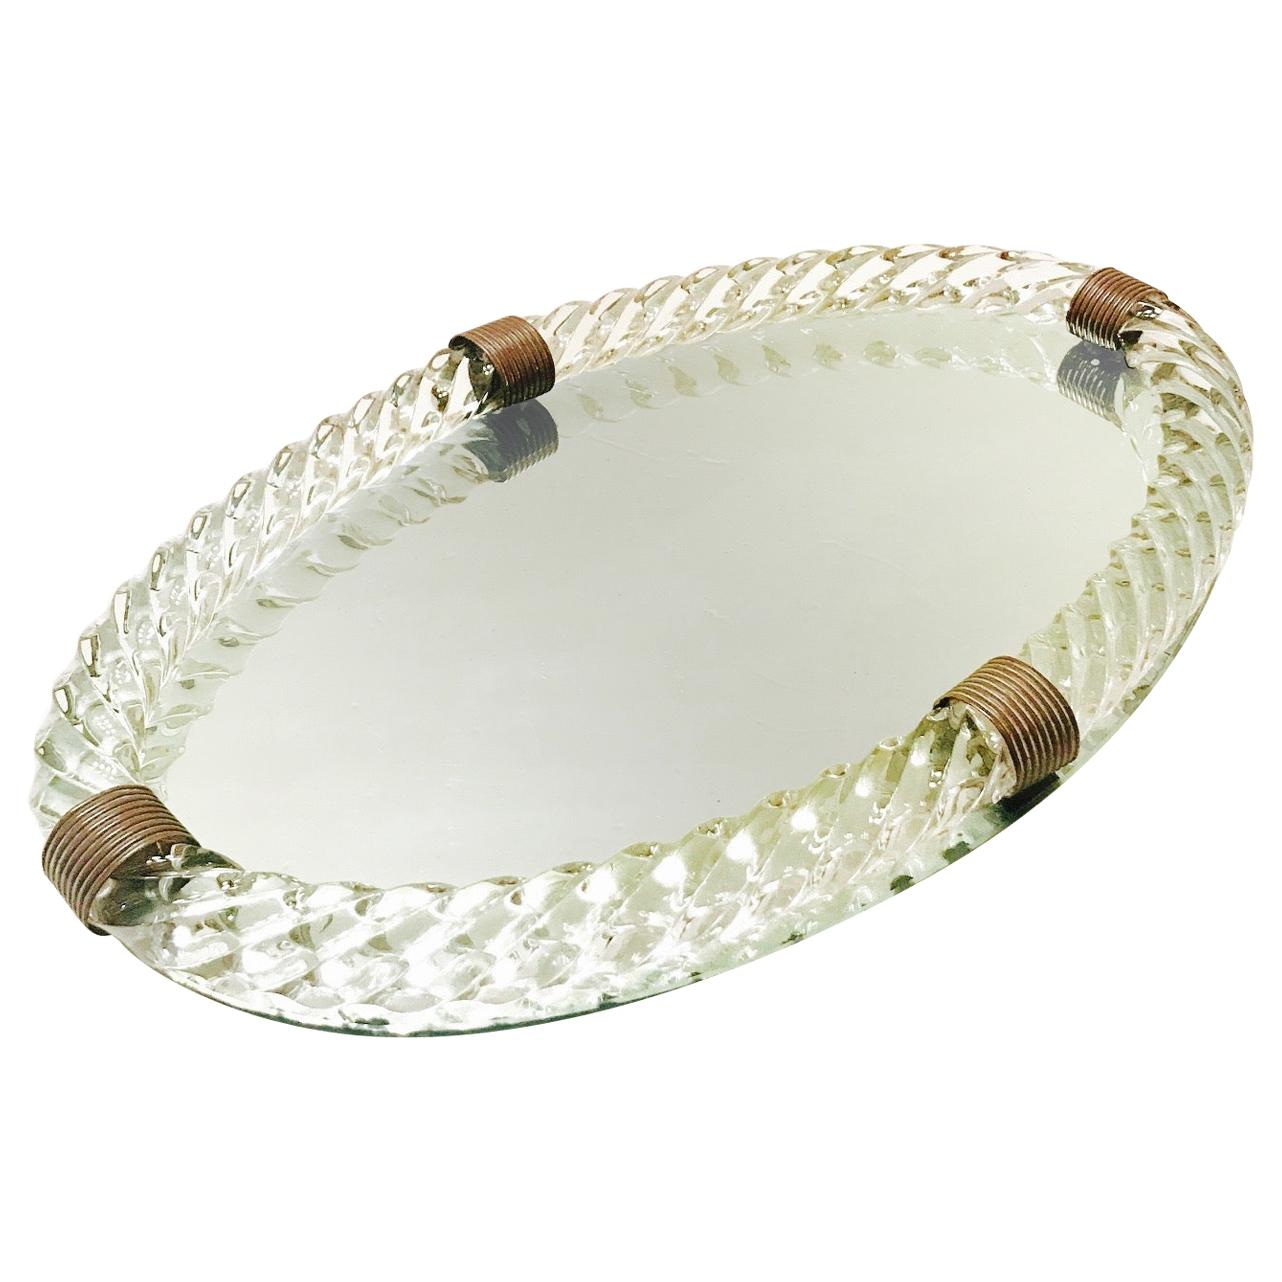 1940s Mirrored Vanity Tray with Murano Glass Rope Gallery by Venini